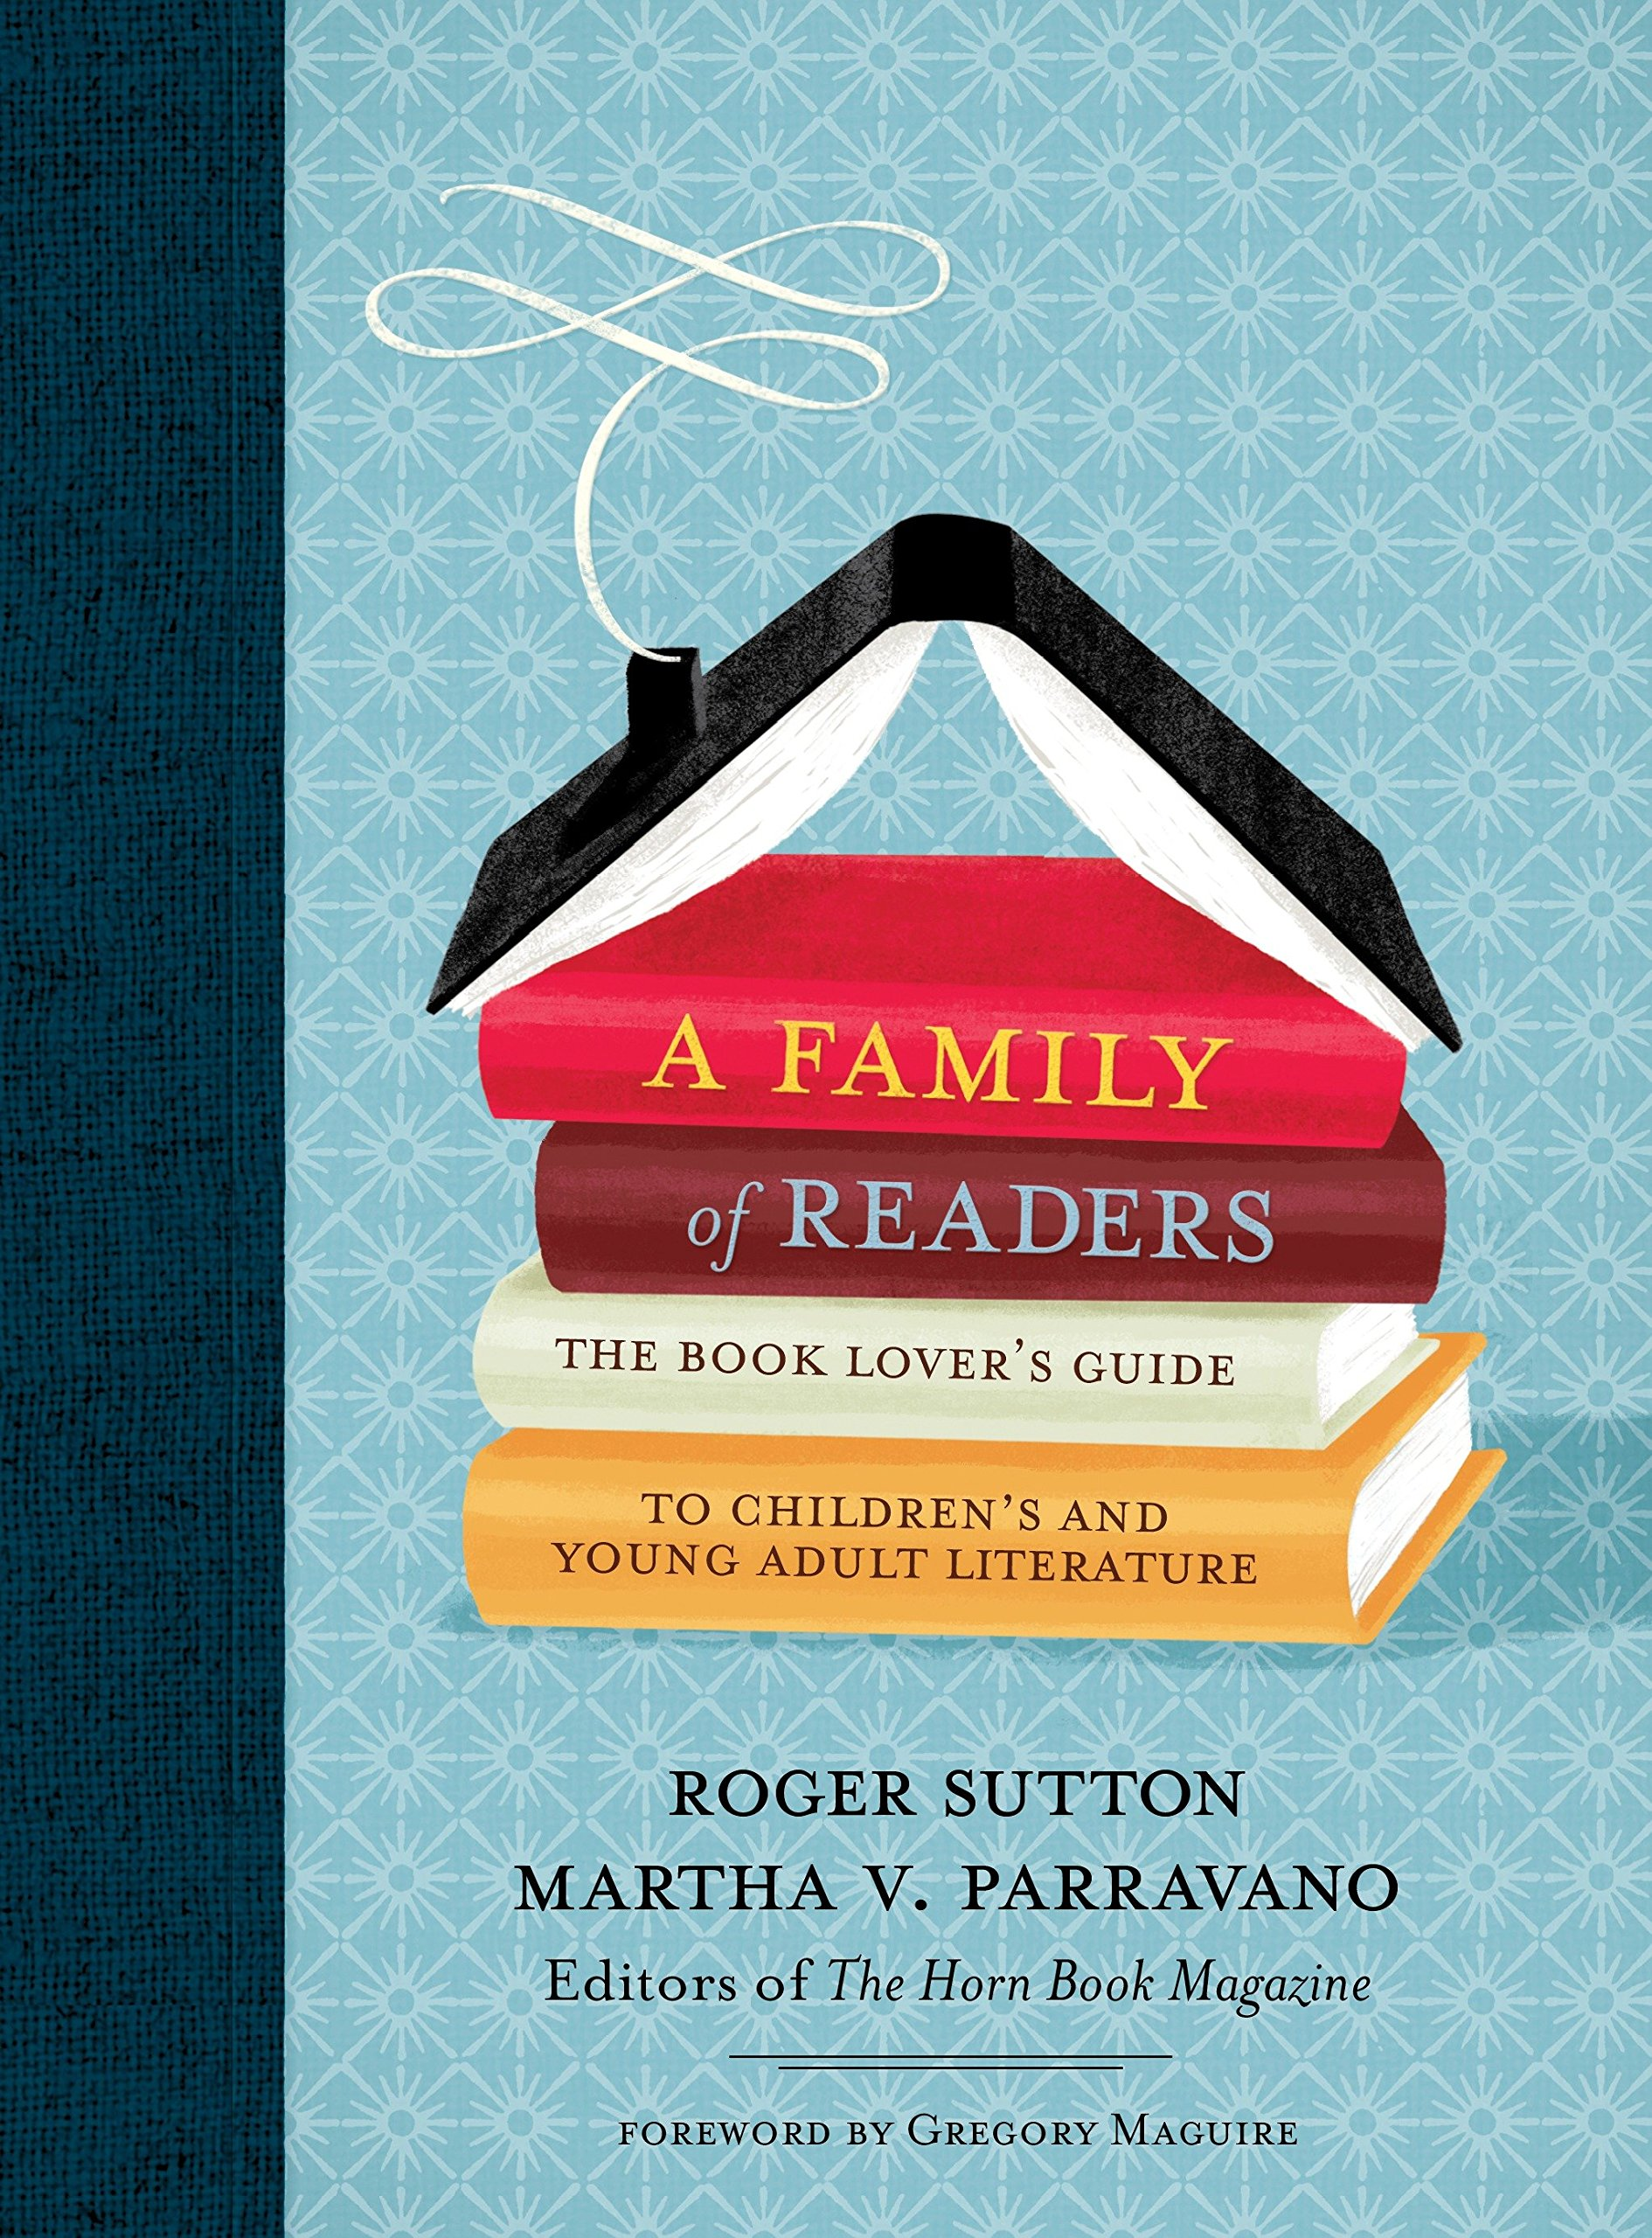 A Family of Readers: The Book Lover's Guide to Children's and Young Adult Literature pdf